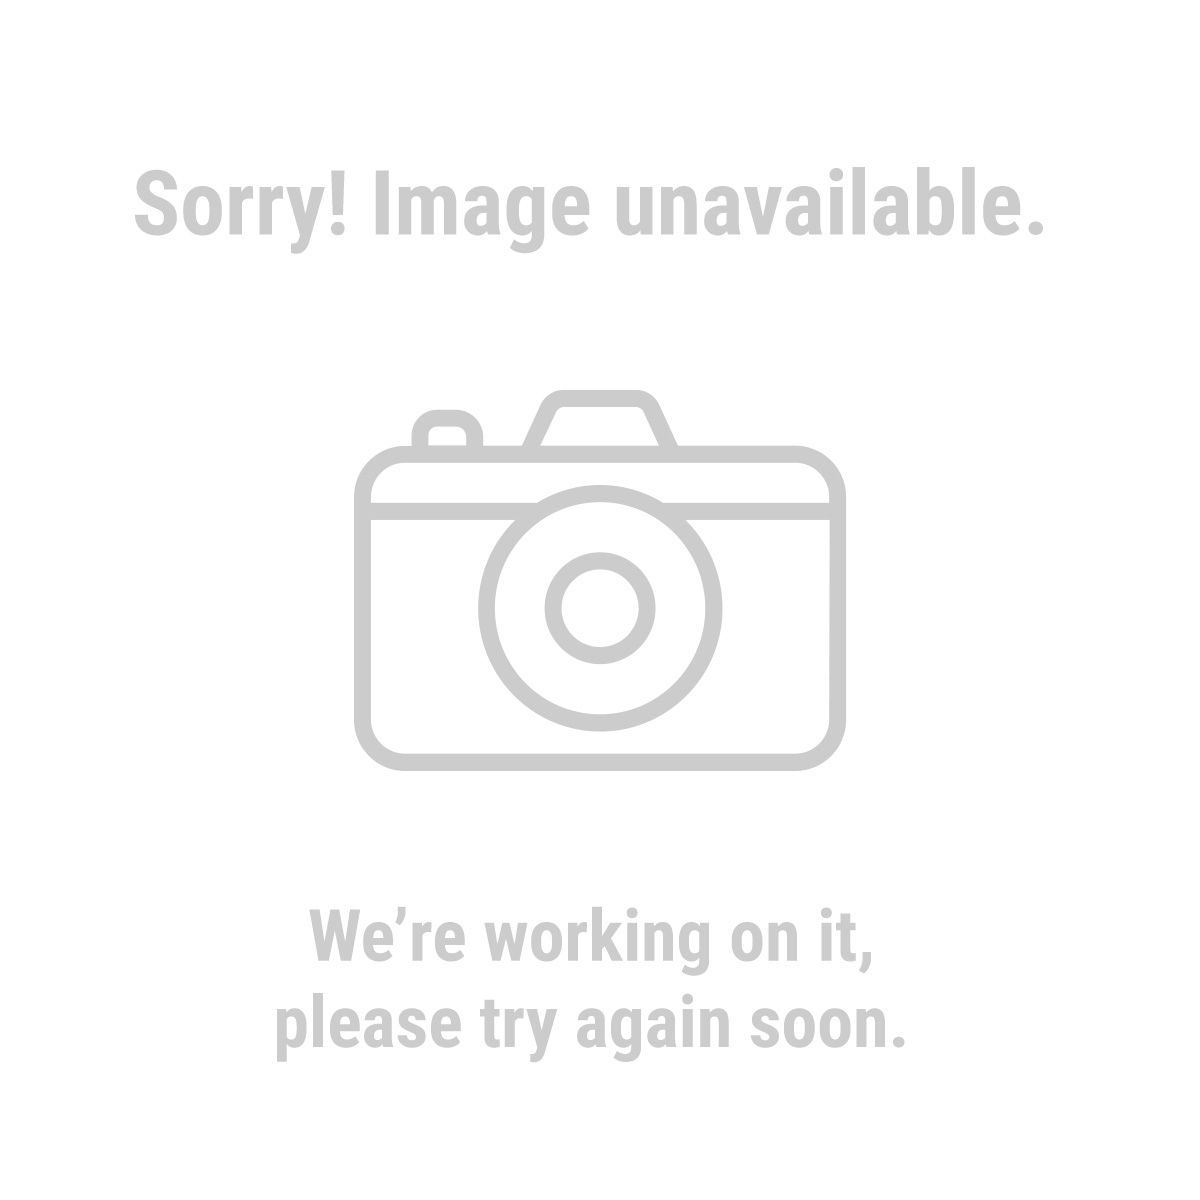 Digital Photo Sensor Tachometer